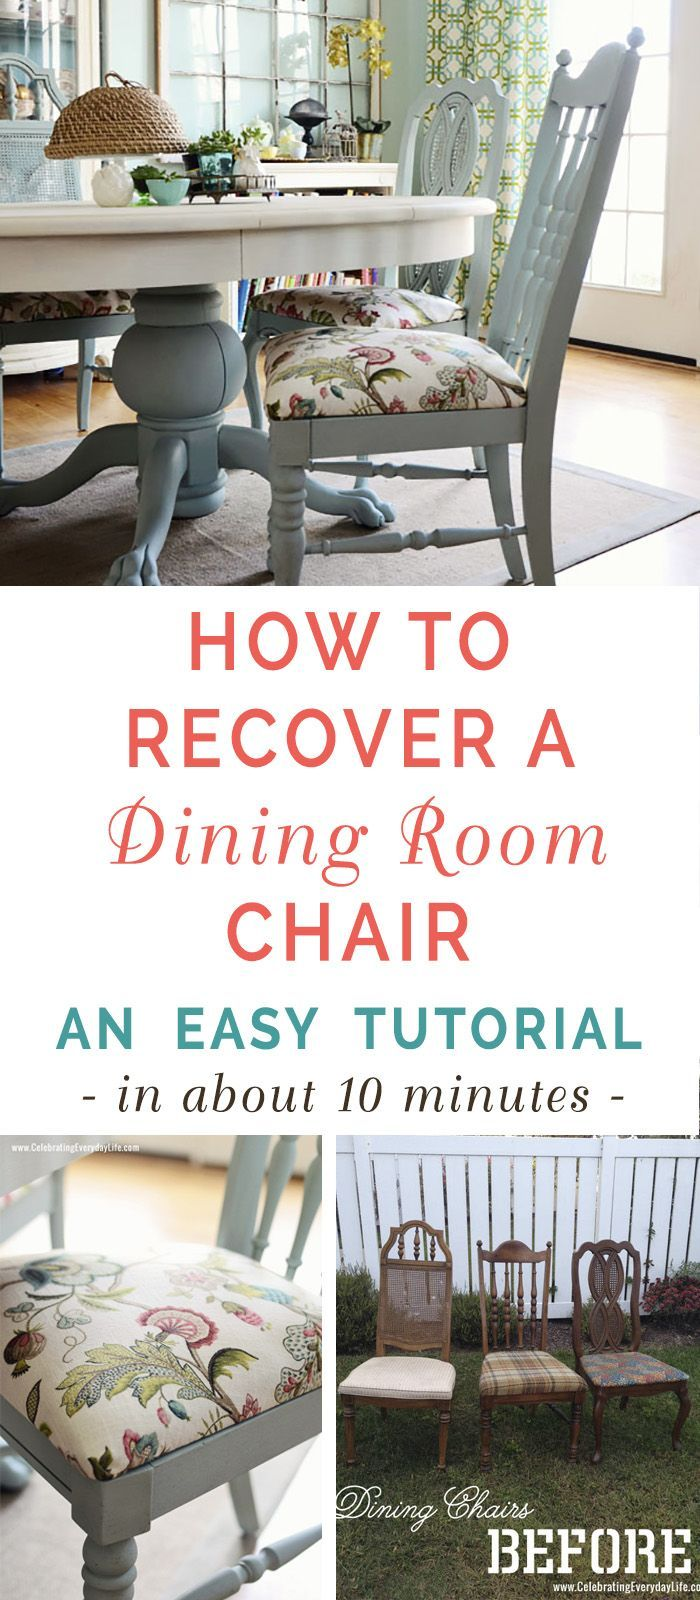 Diy Dining Room Chair Covers ~ kwitter.us